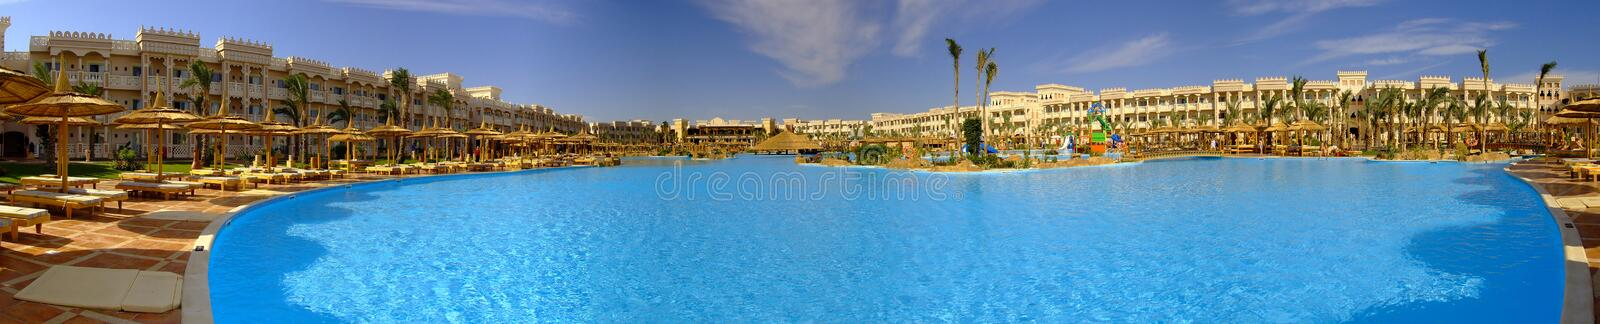 Download Hotel resort panorama stock image. Image of blue, loungers - 6965769